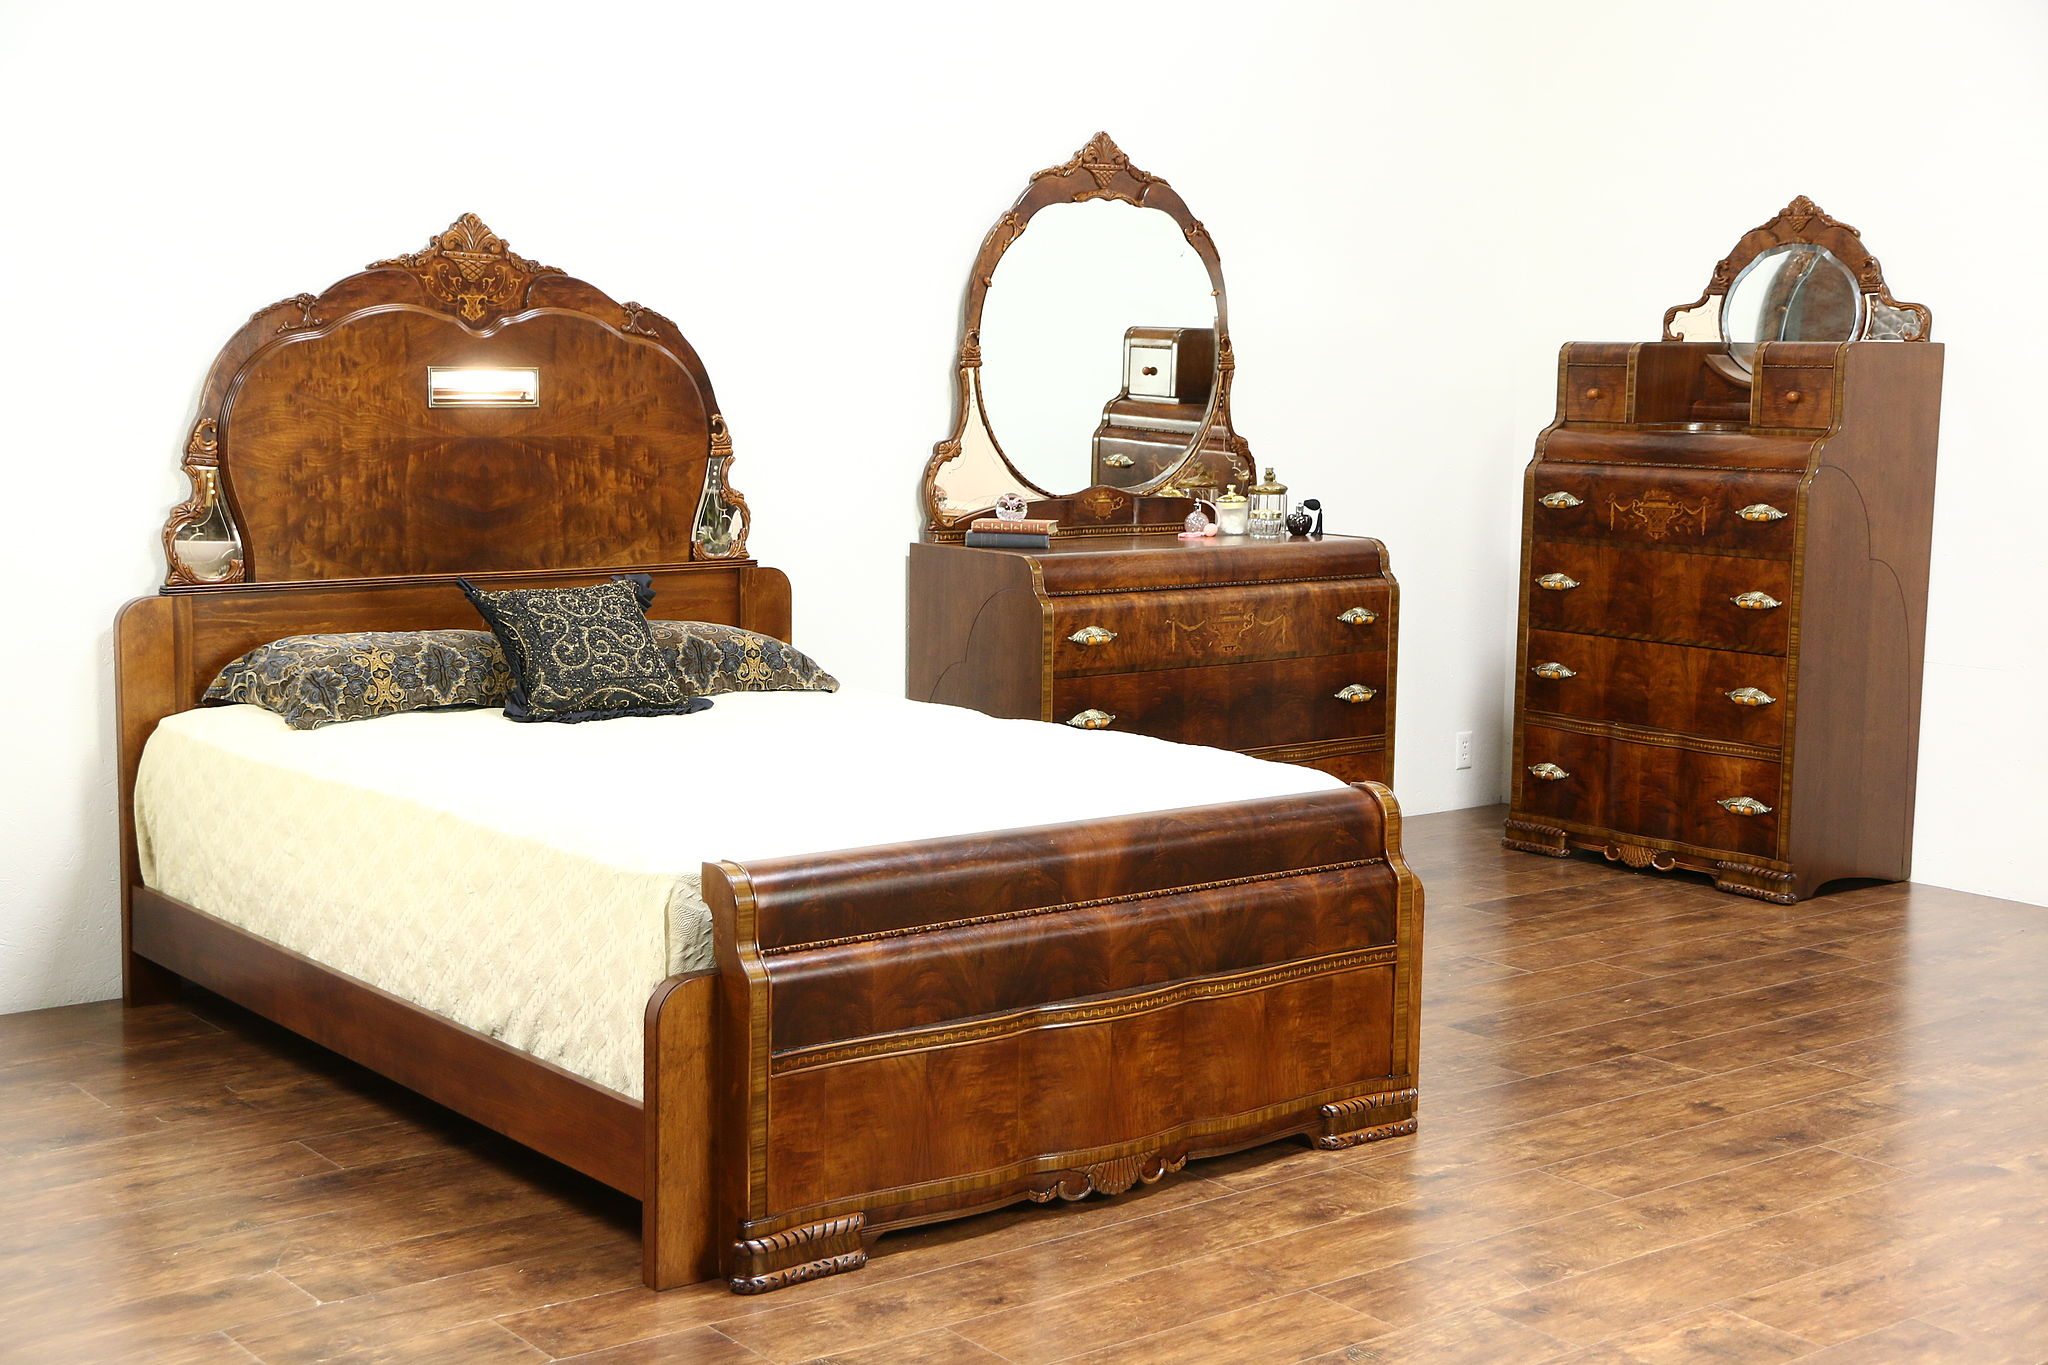 Sold Art Deco Waterfall Design 1935 Vintage 3 Pc Bedroom Set Queen Size Bed Harp Gallery Antiques Furniture